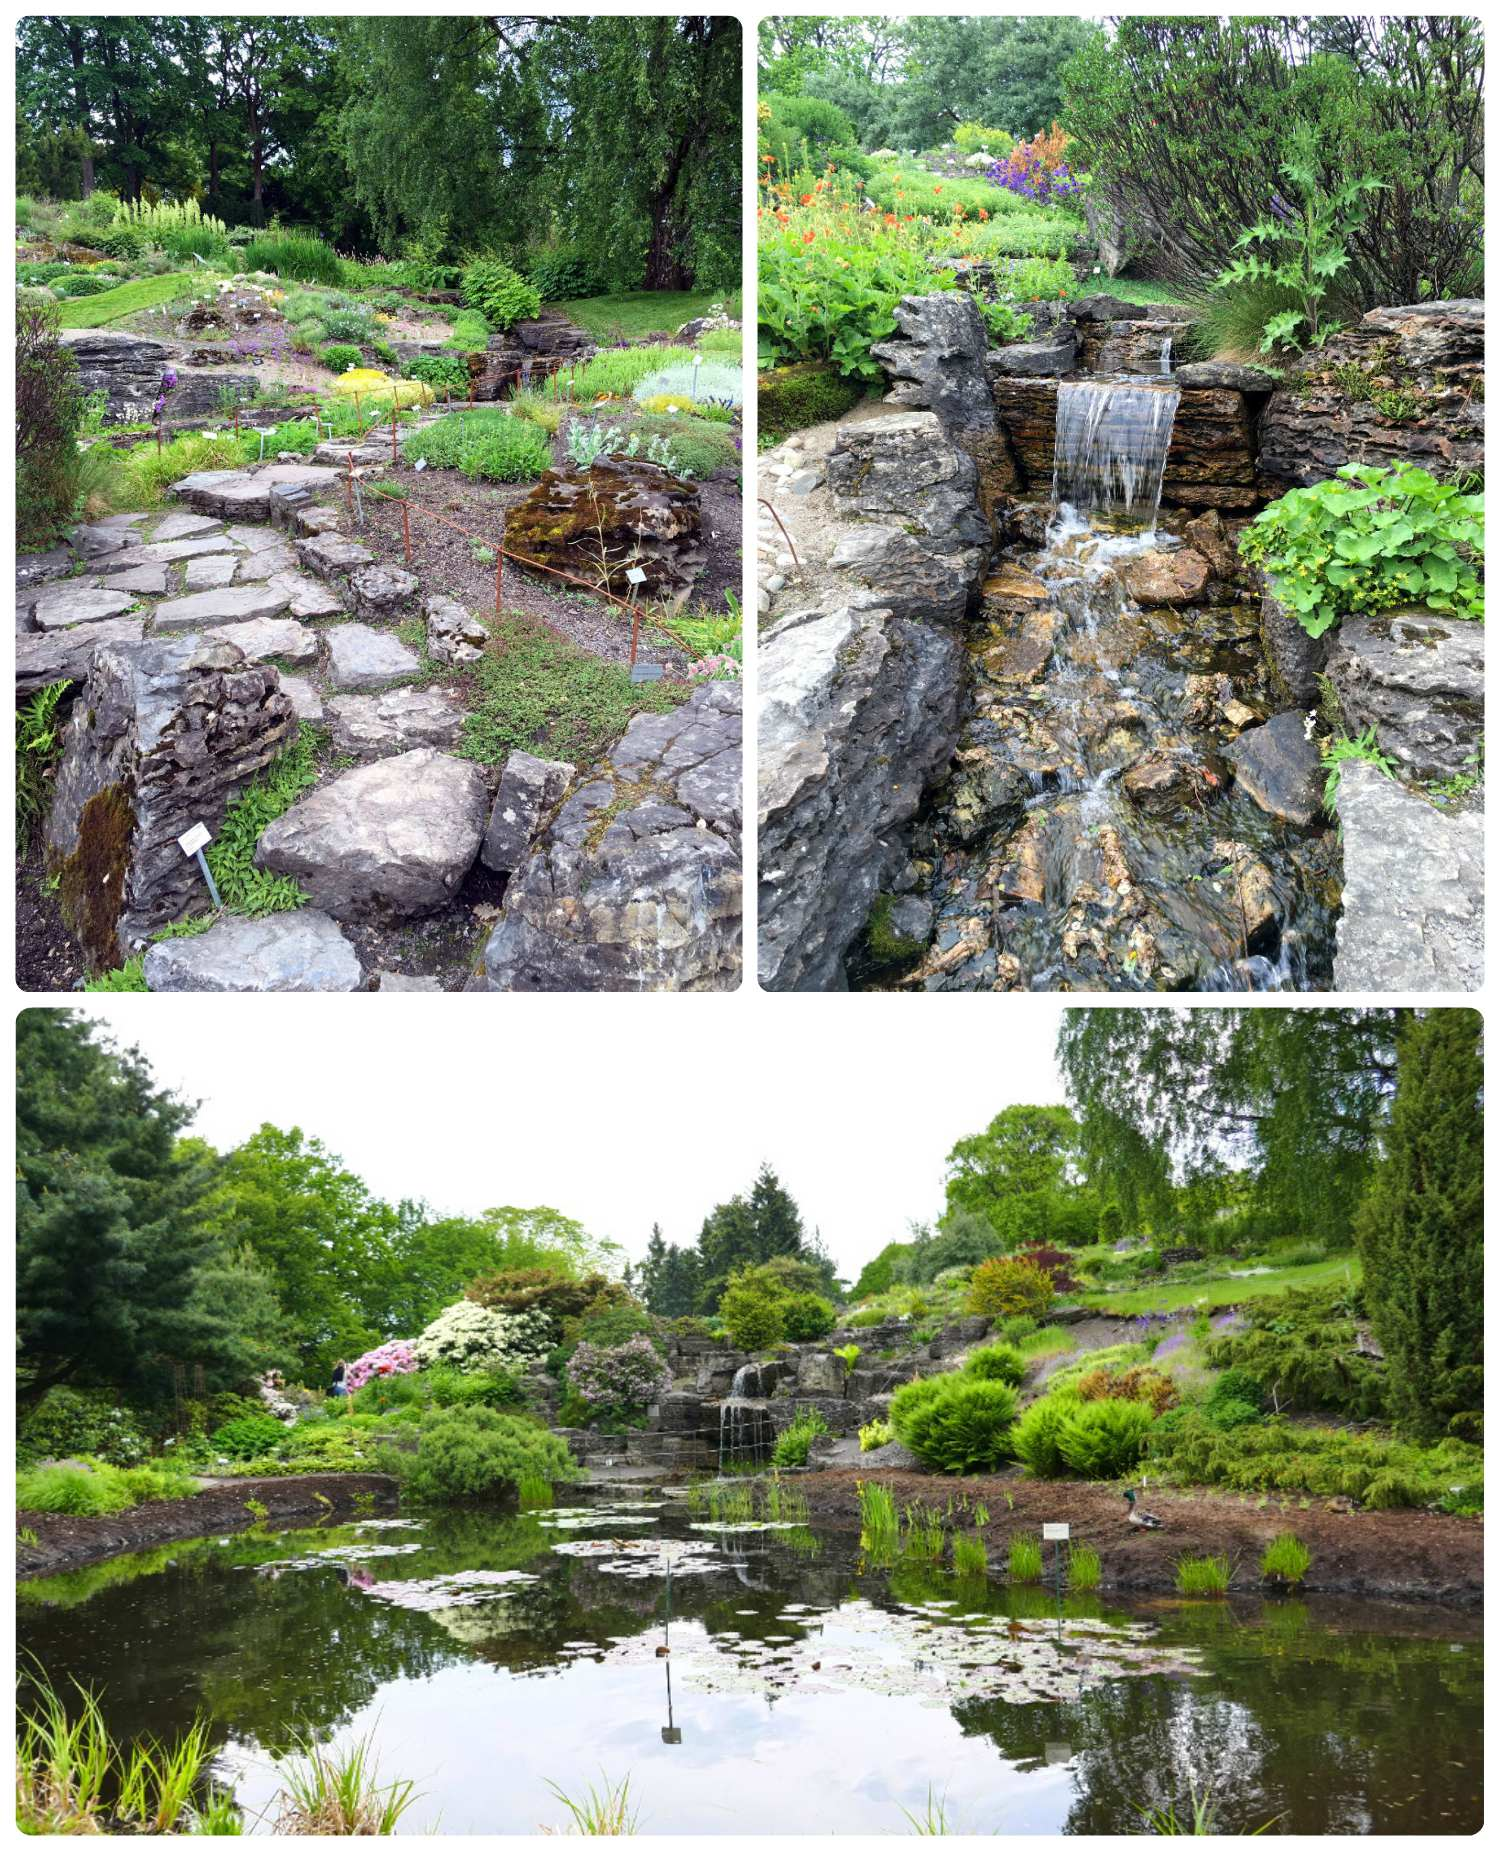 Ponds and waterfalls in the University Botanical garden.